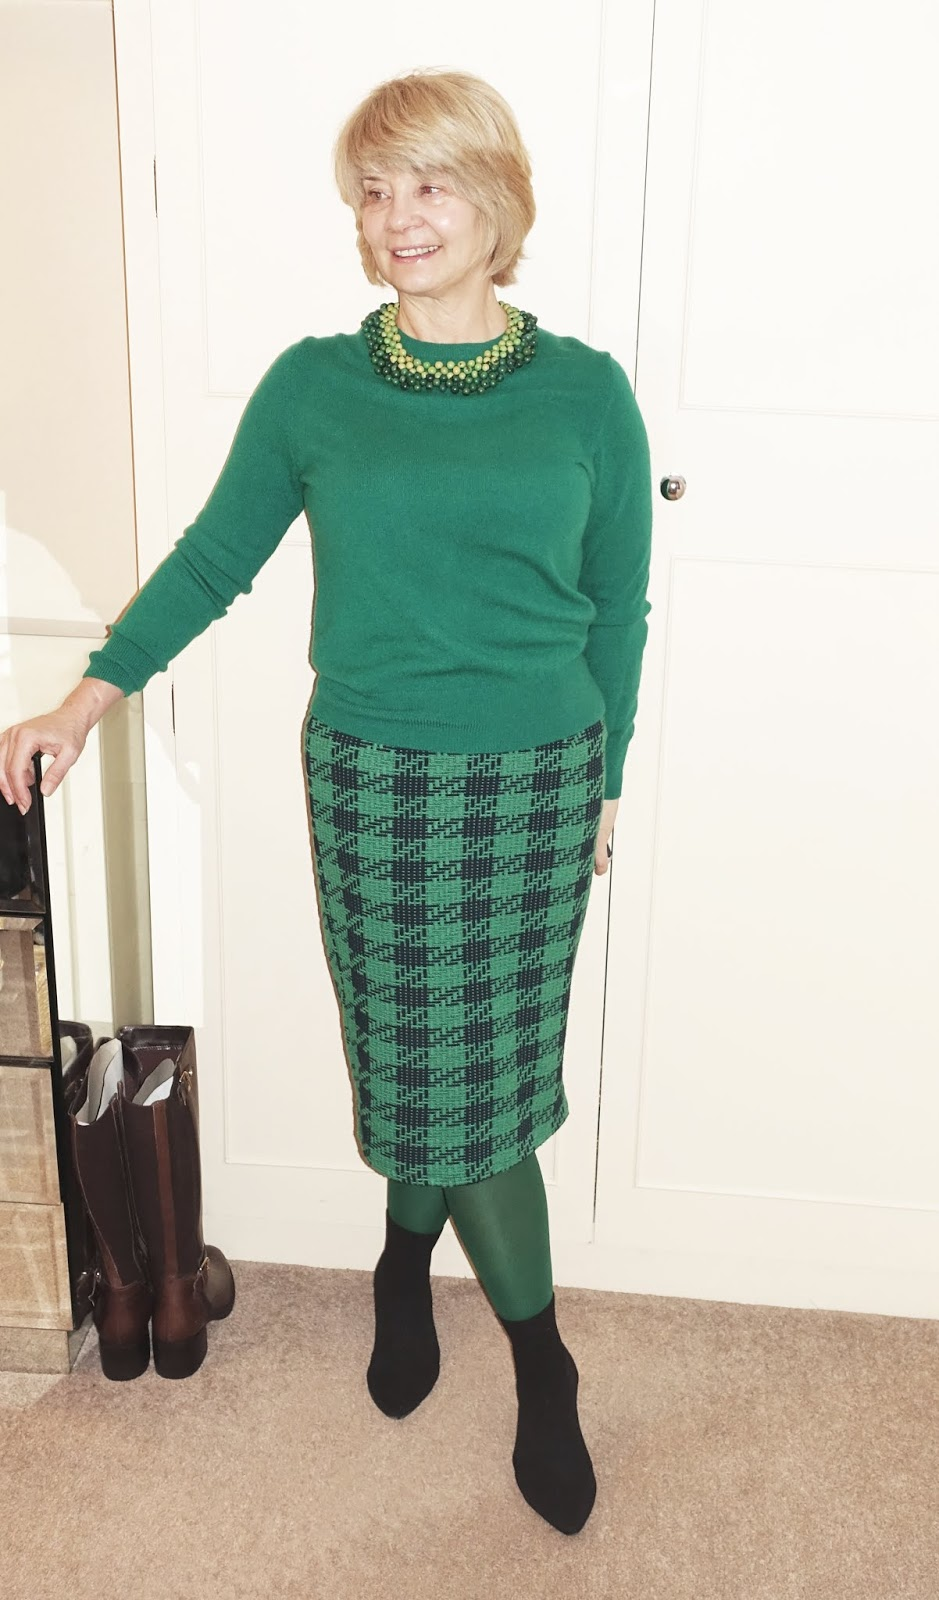 Over-50s blogger Is This Mutton? in an all-green outfit of jumper, necklace, skirt and tights.